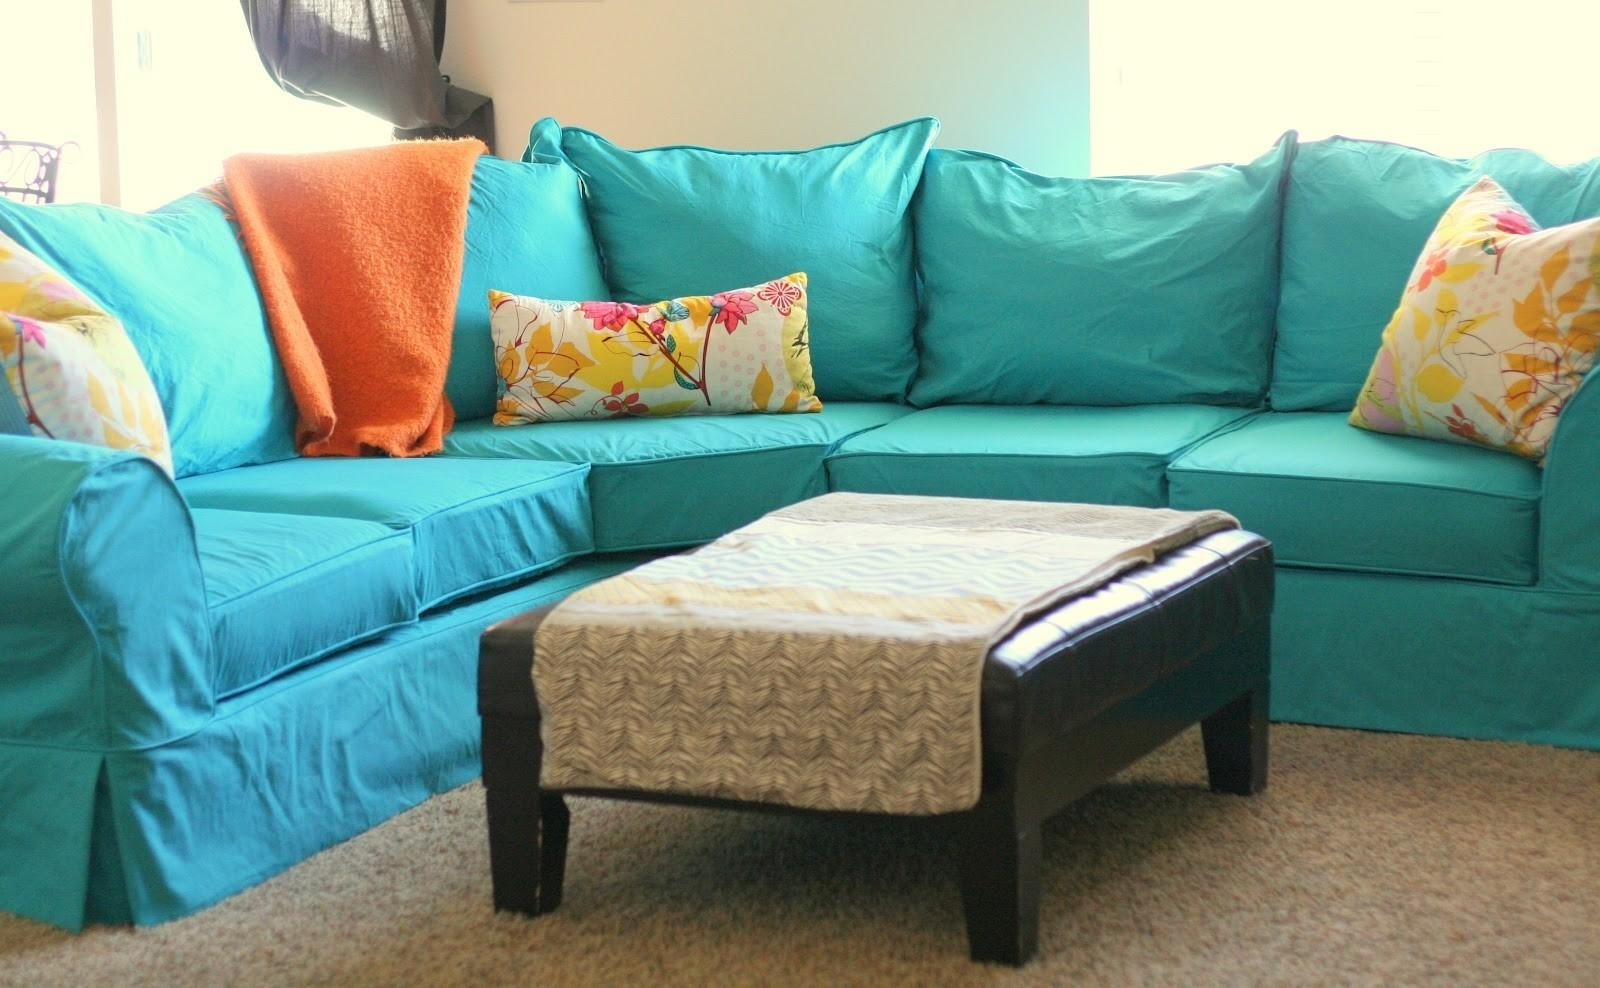 Attractive Turquoise Soa Slipcovers Ideas With Rather Loose Model With Regard To Turquoise Sofa Covers (View 3 of 20)